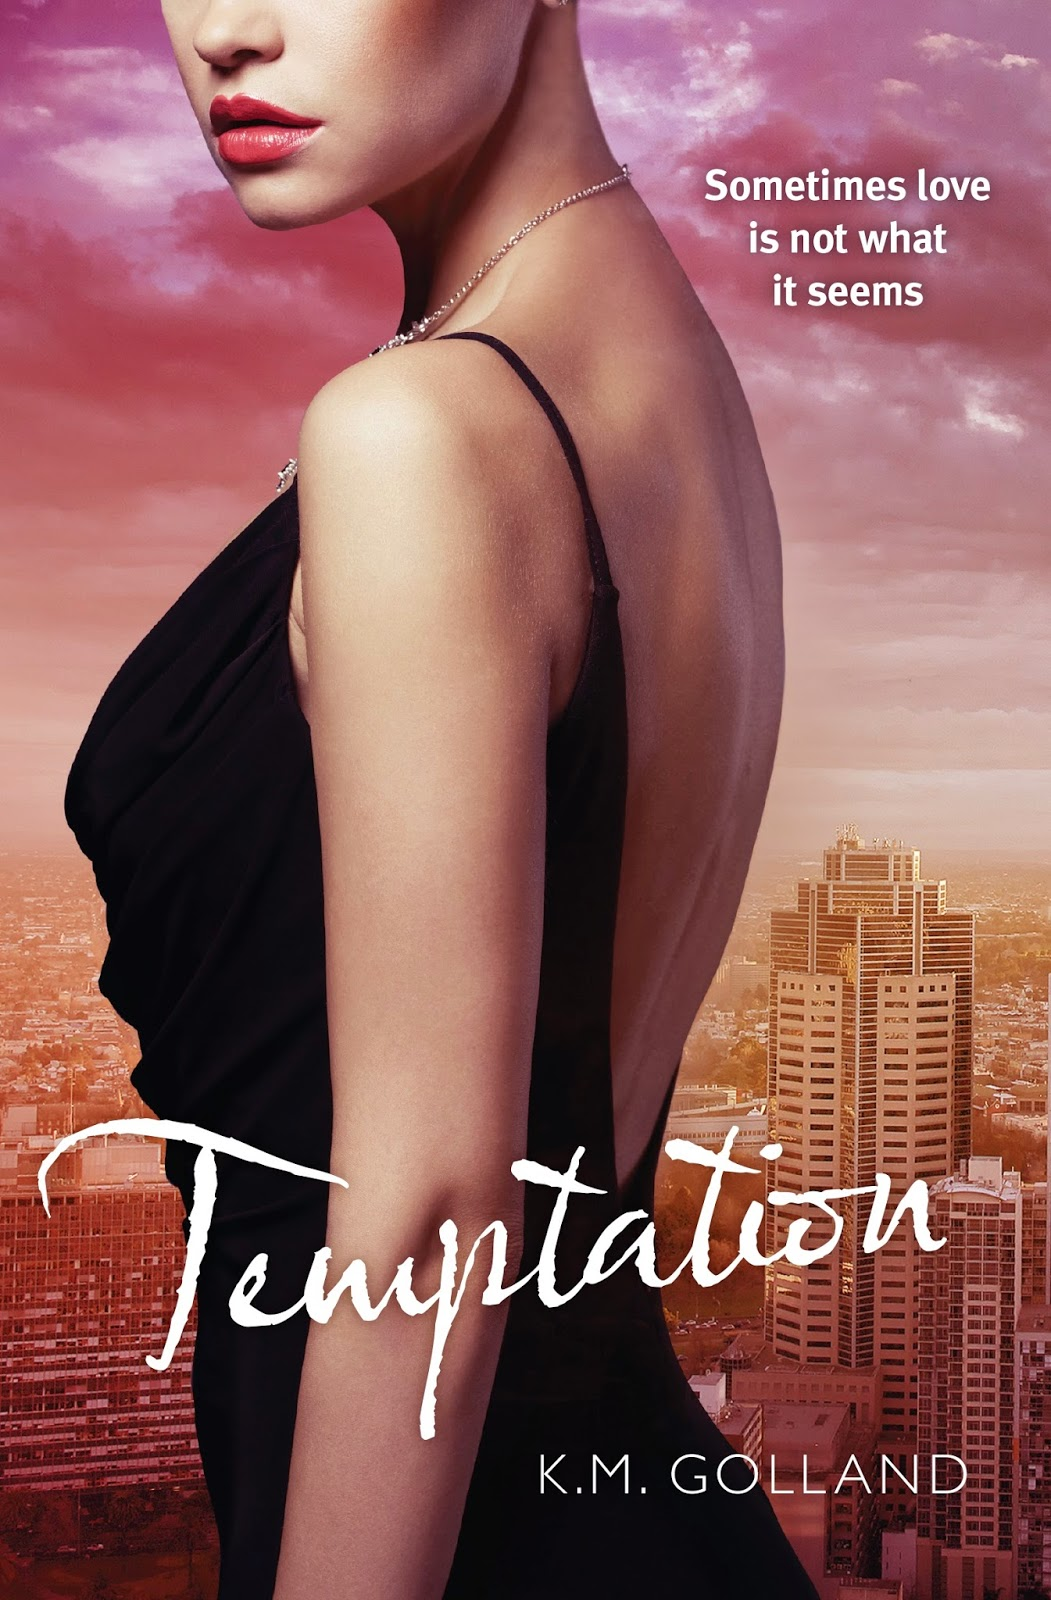 re release blog tour temptation by k m golland book in the re release blog tour temptation by k m golland book 1 in the temptation series the never ending bookshelf